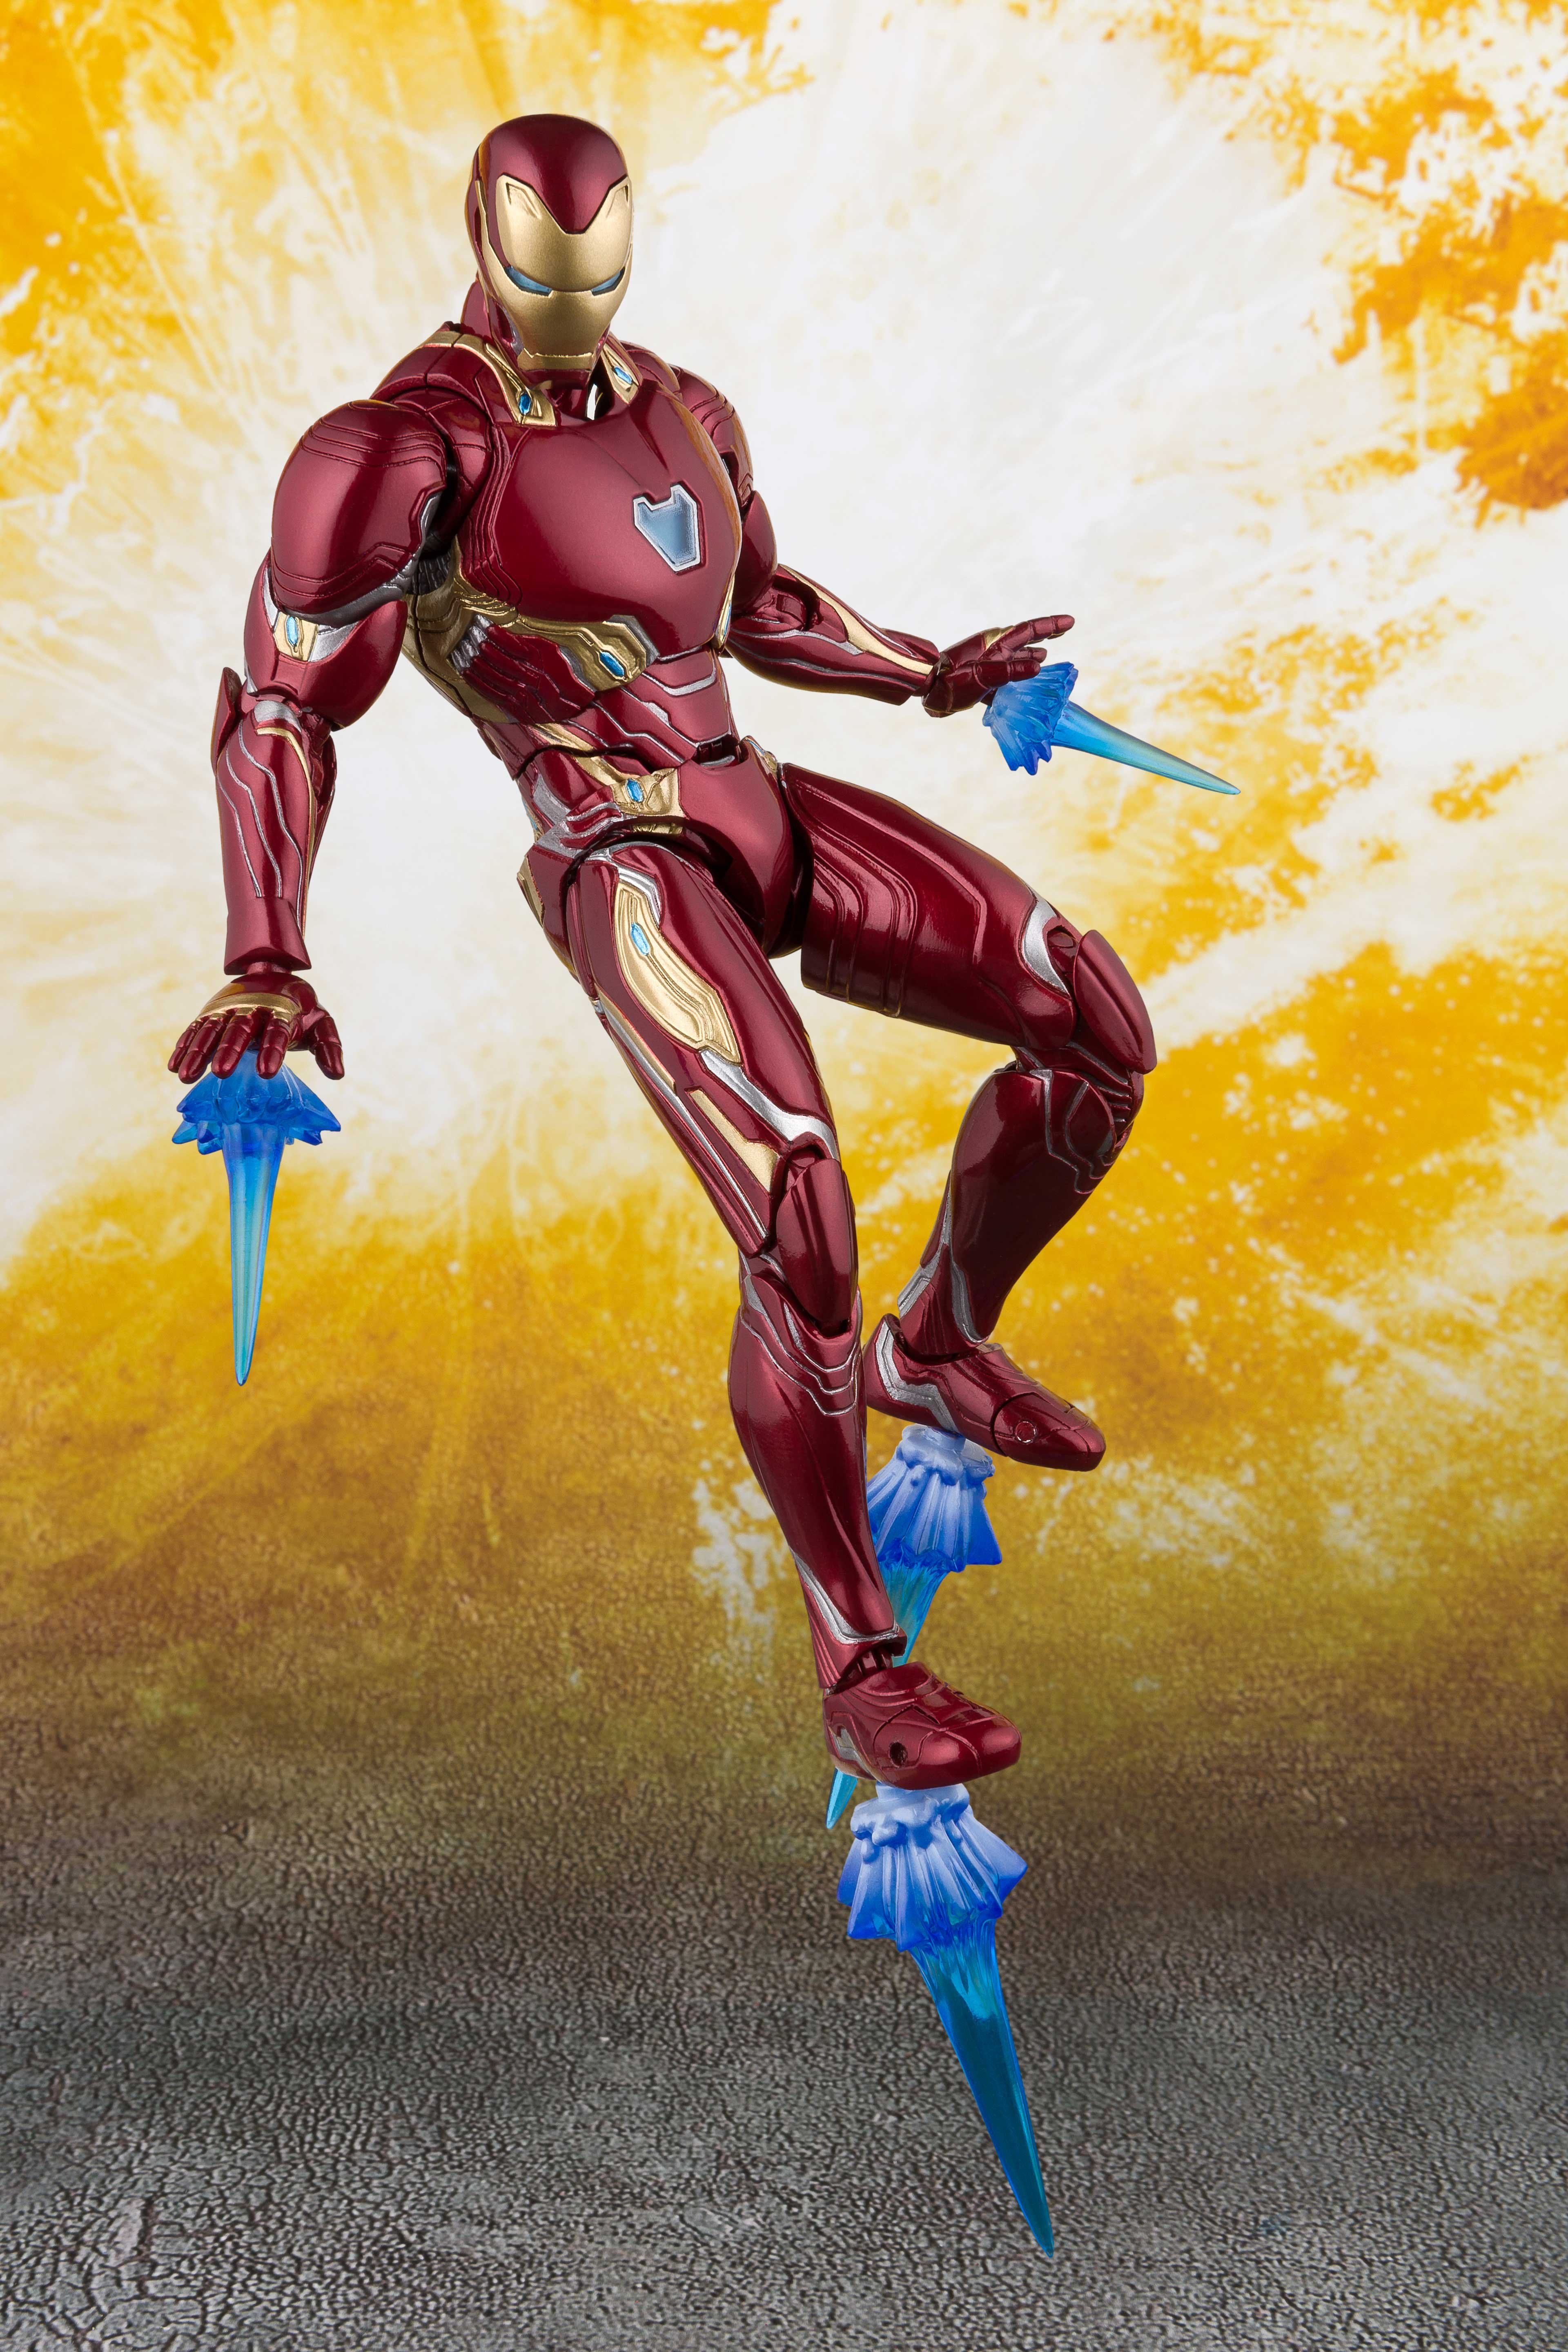 [Pre-Order] S.H. Figuarts: Avengers: Infinity War - Iron Man Mark 50 & Tamashii Stage